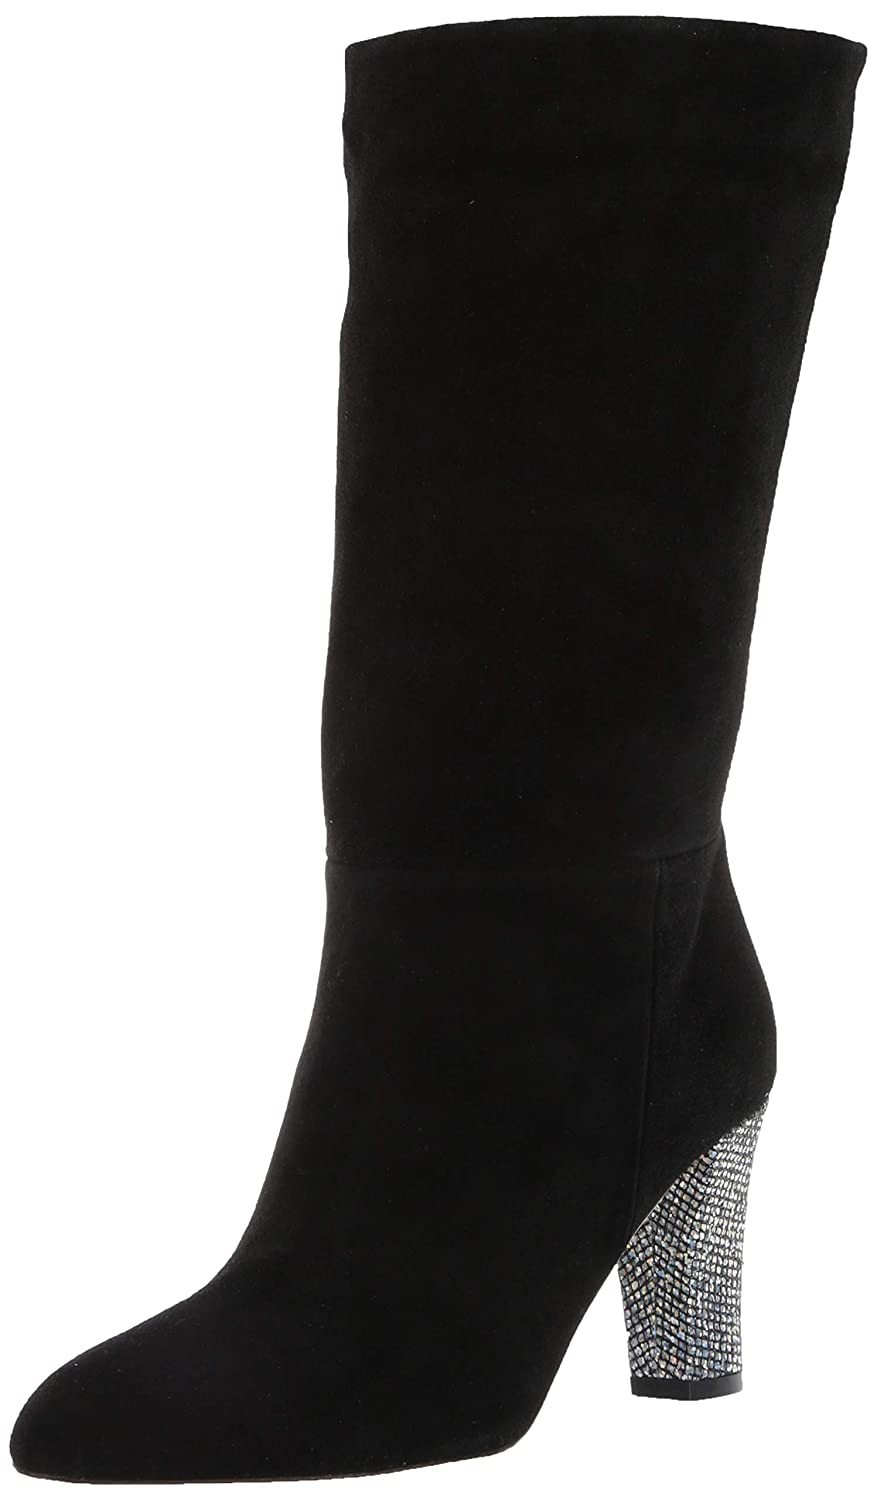 Black Suede SJP by Sarah Jessica Parker Womens Reign Almond Toe Mid Calf Boot